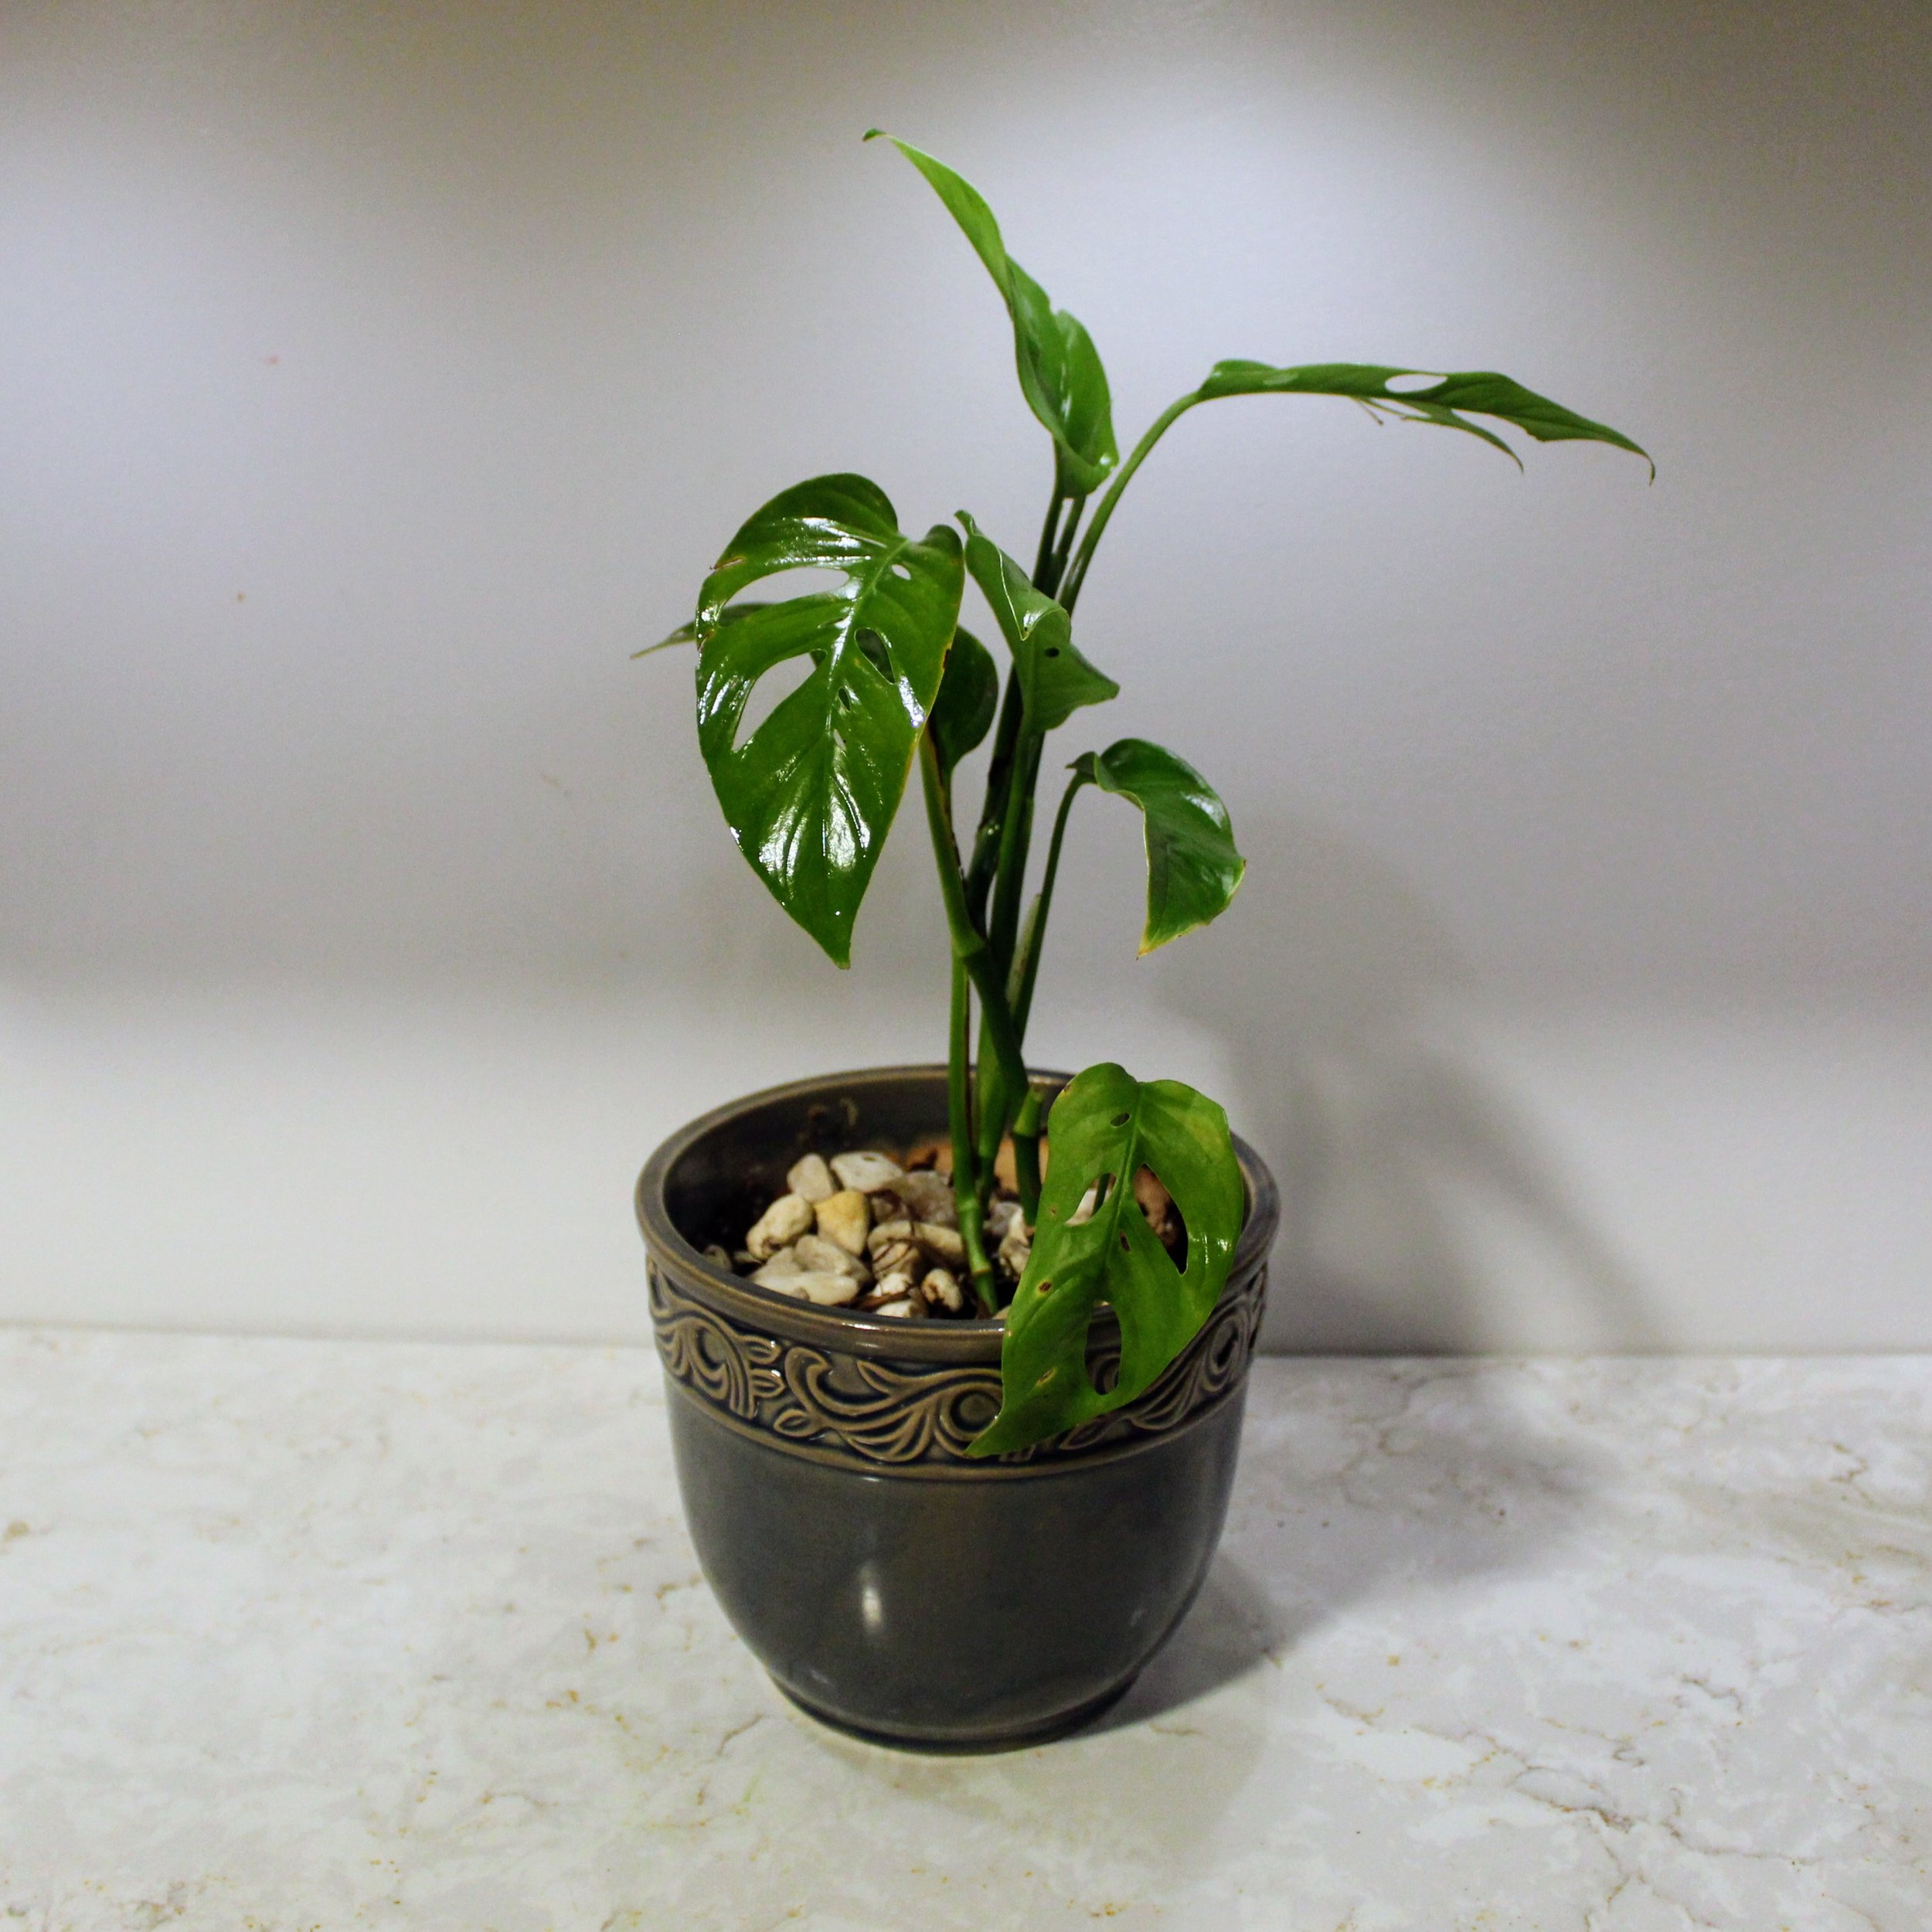 ninth ward nursery - potted plant2.jpg